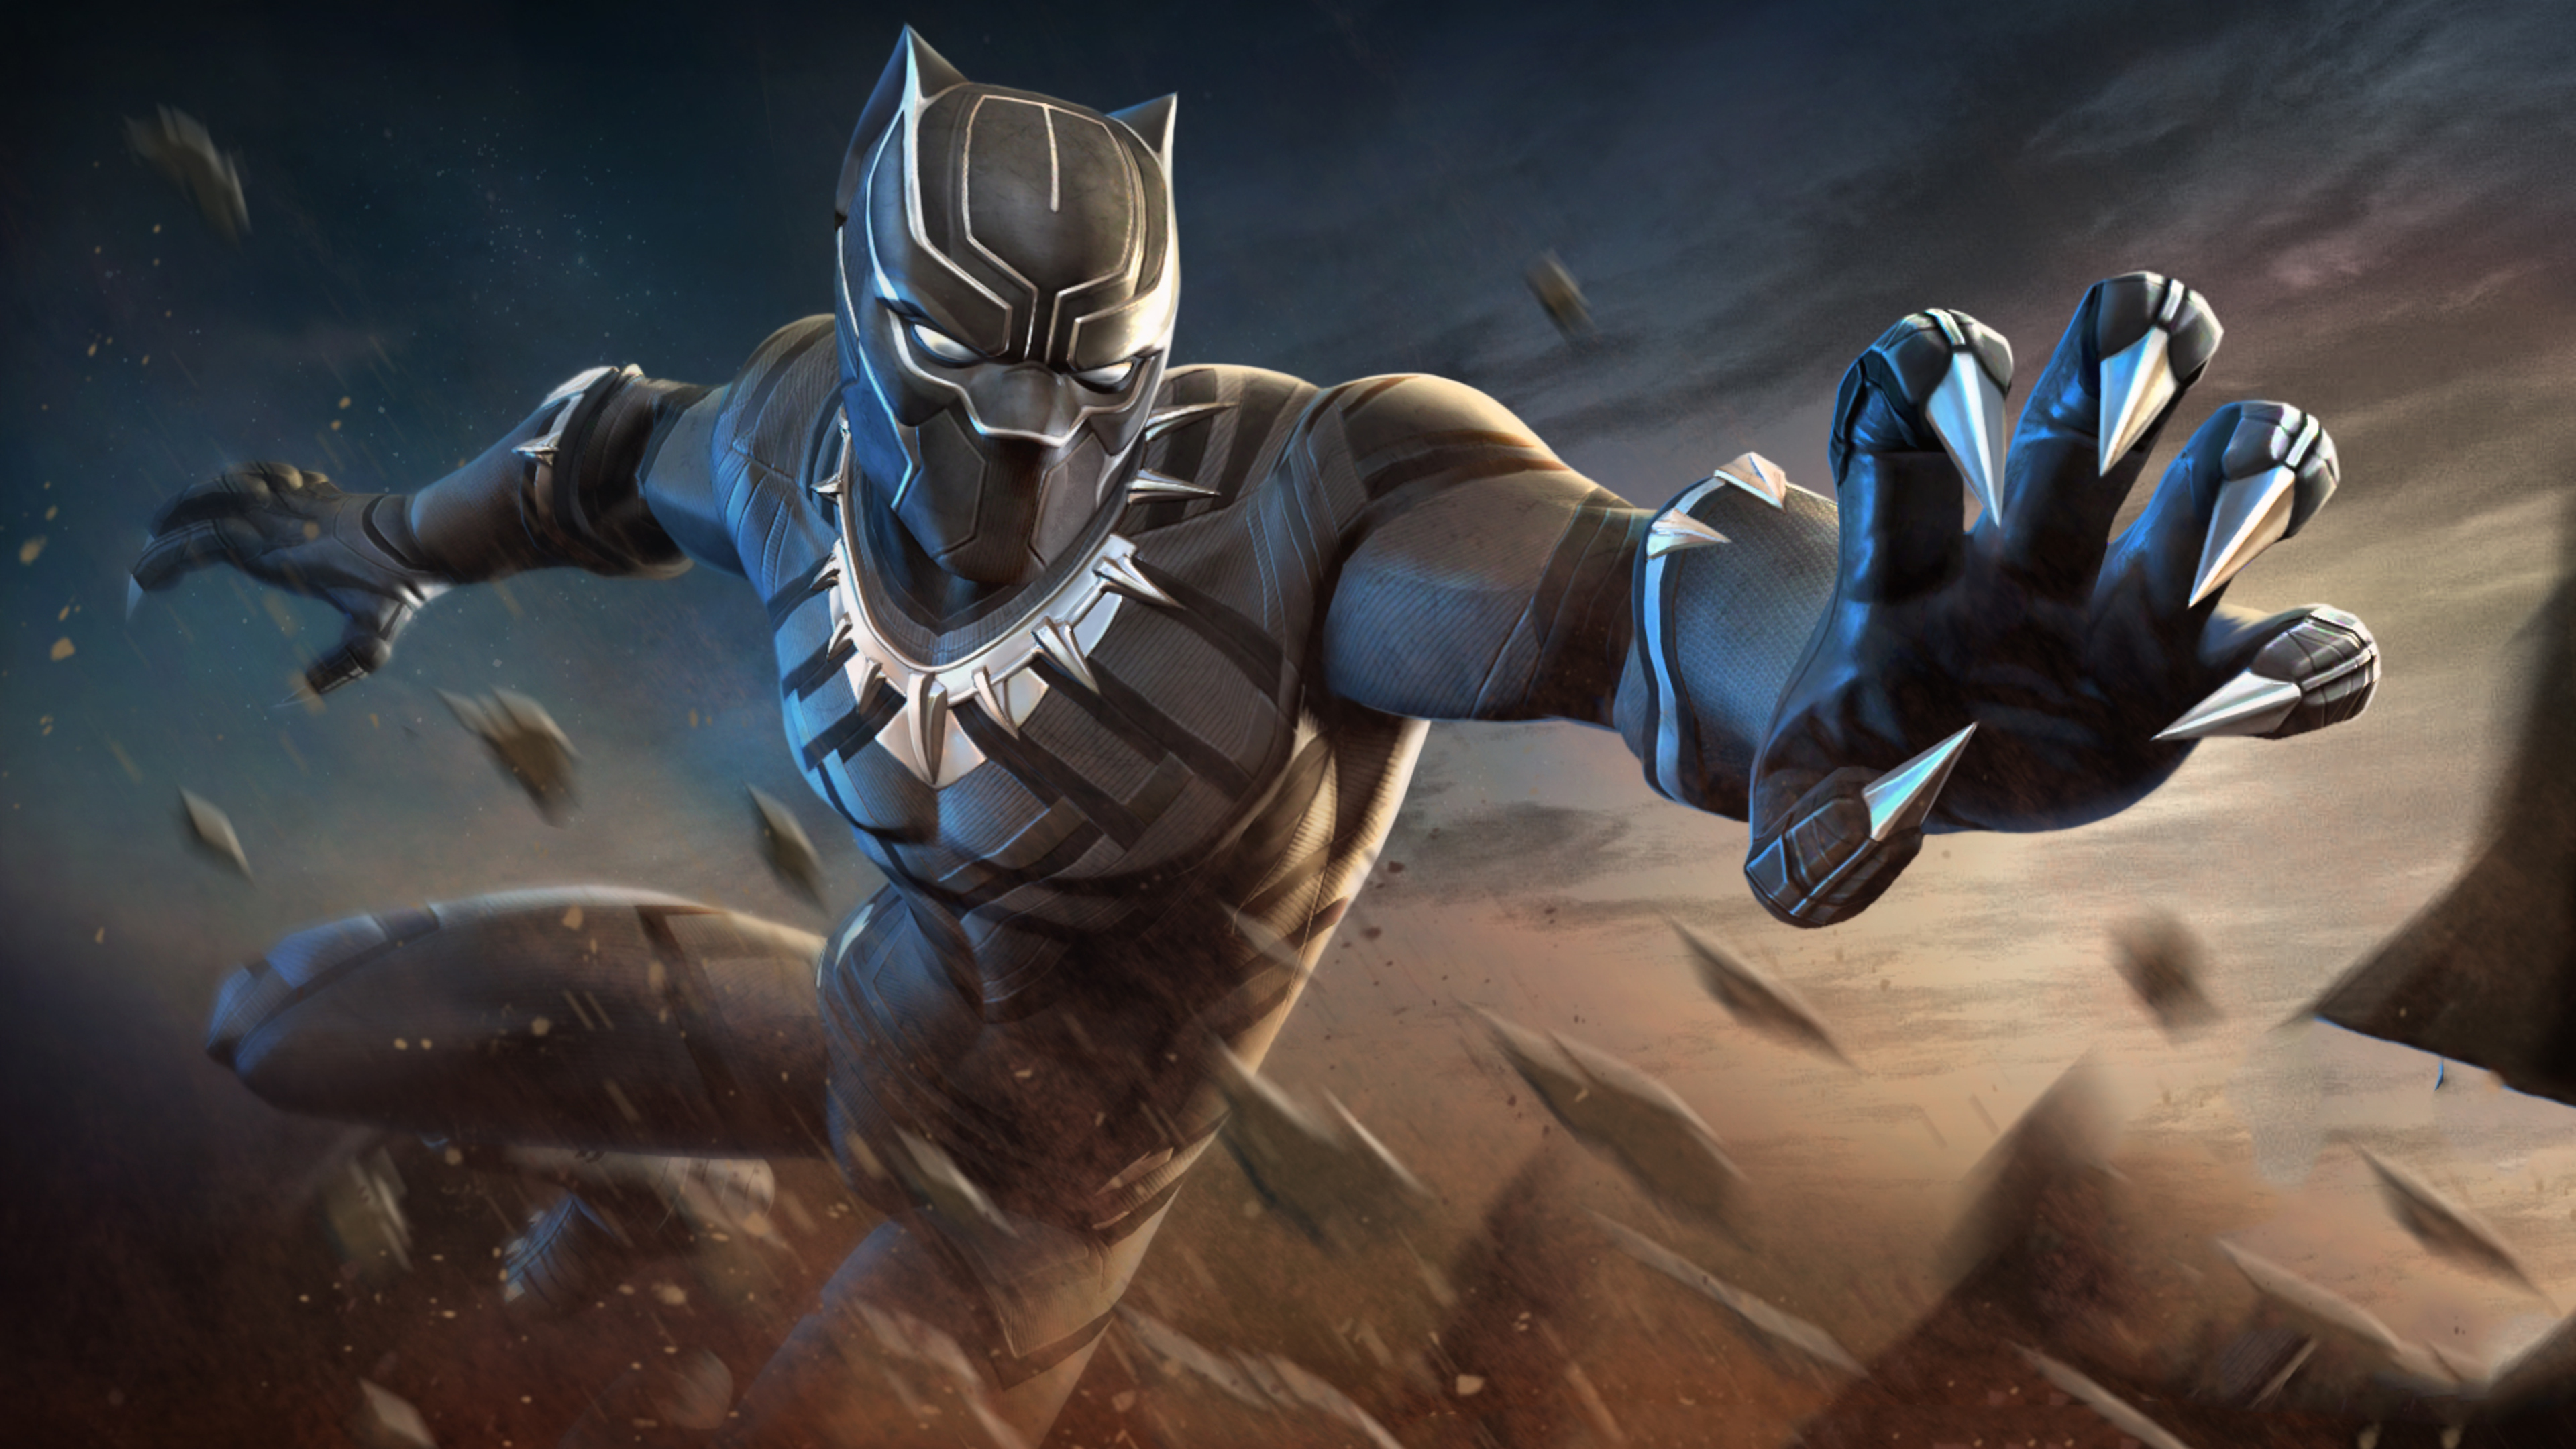 3840x2160 Black Panther Marvel Contest Of Champions 4k Hd 4k Wallpapers Images Backgrounds Photos And Pictures